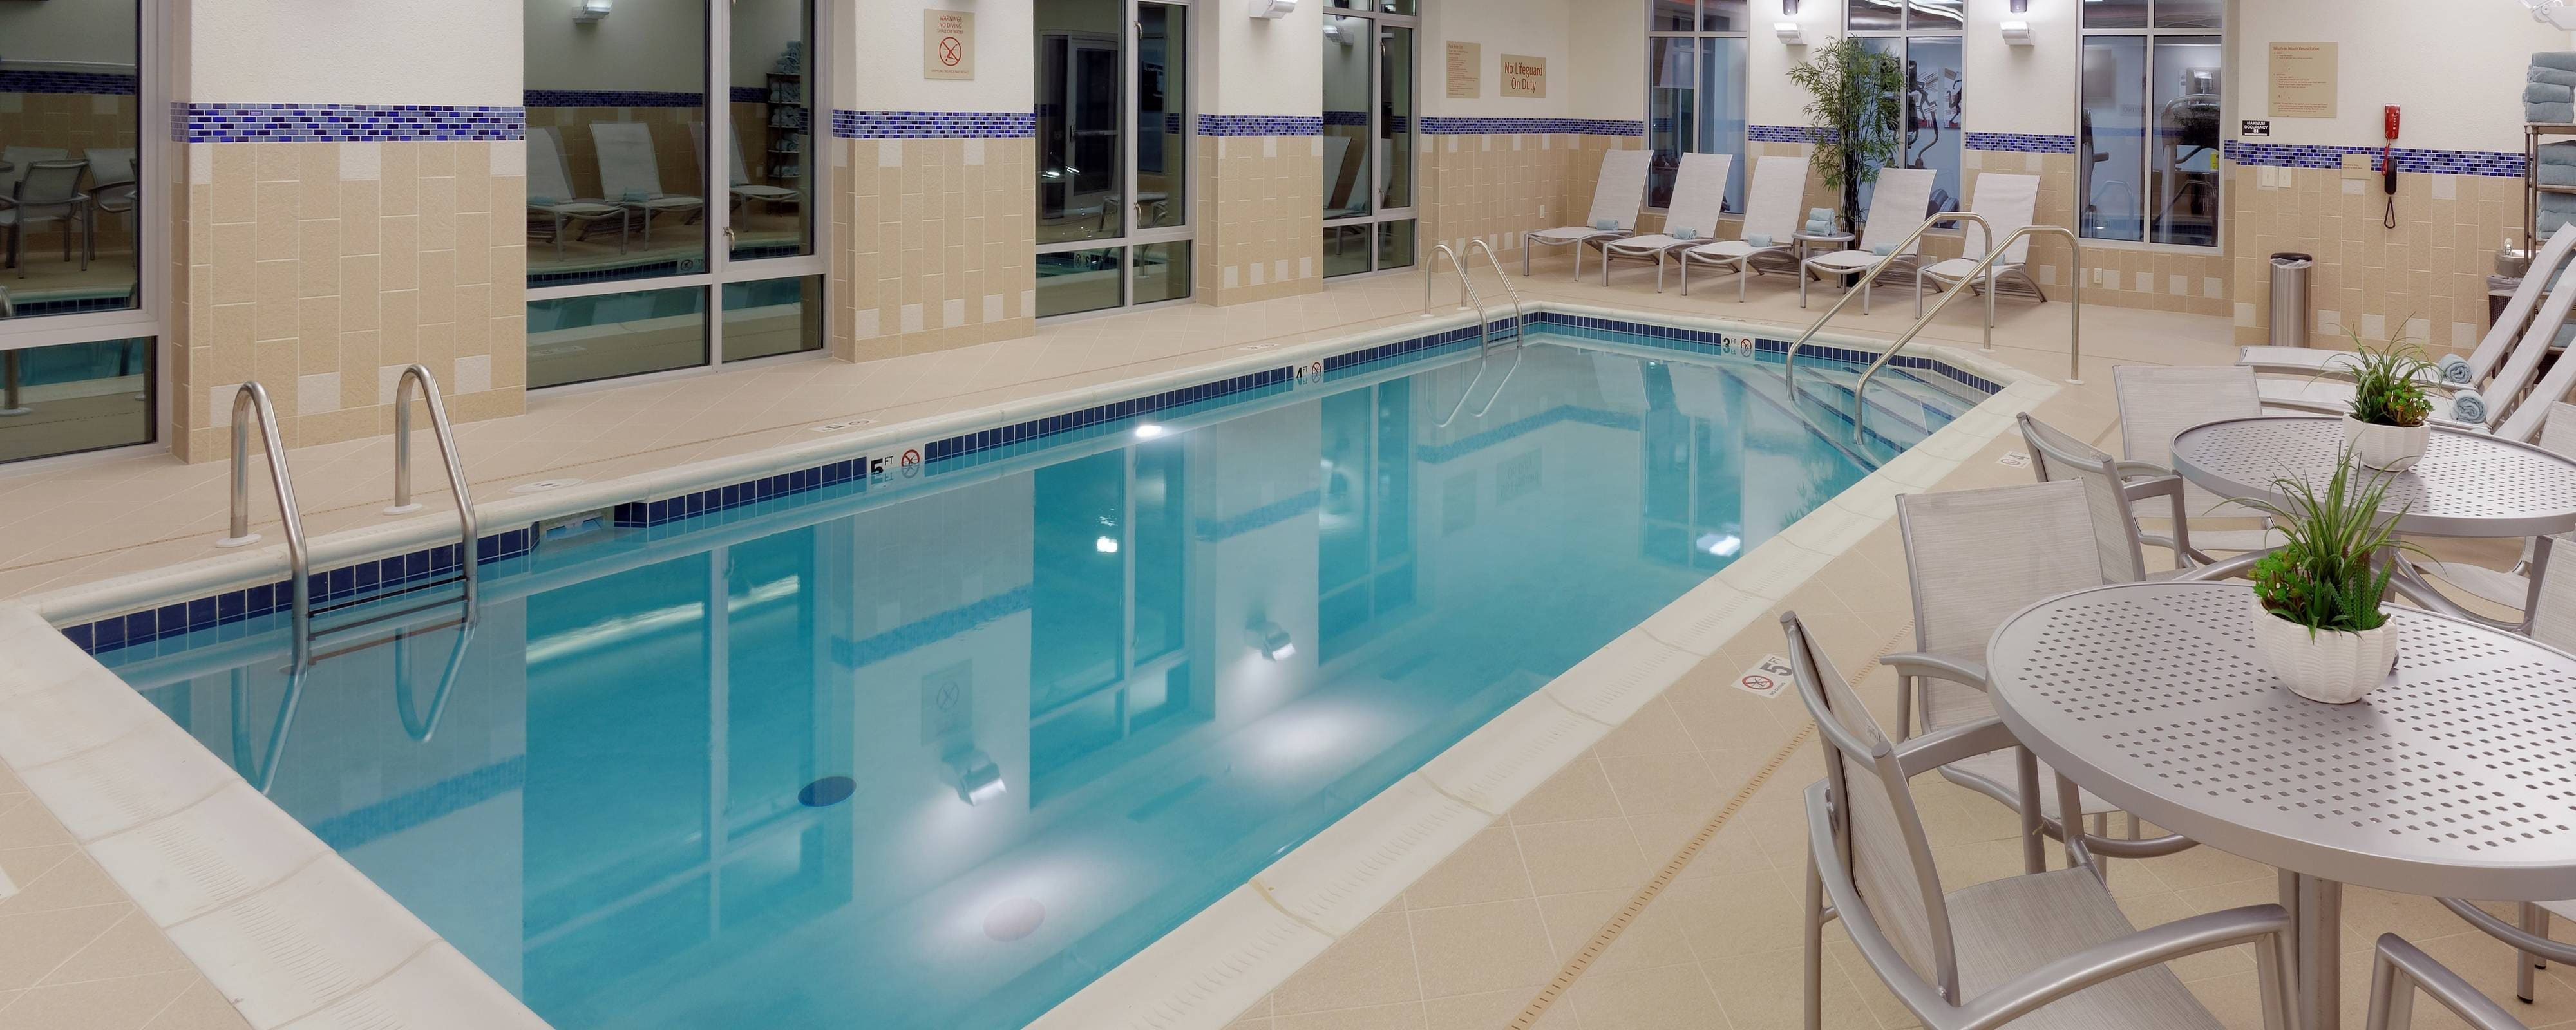 Hotelpool in Springfield, Missouri